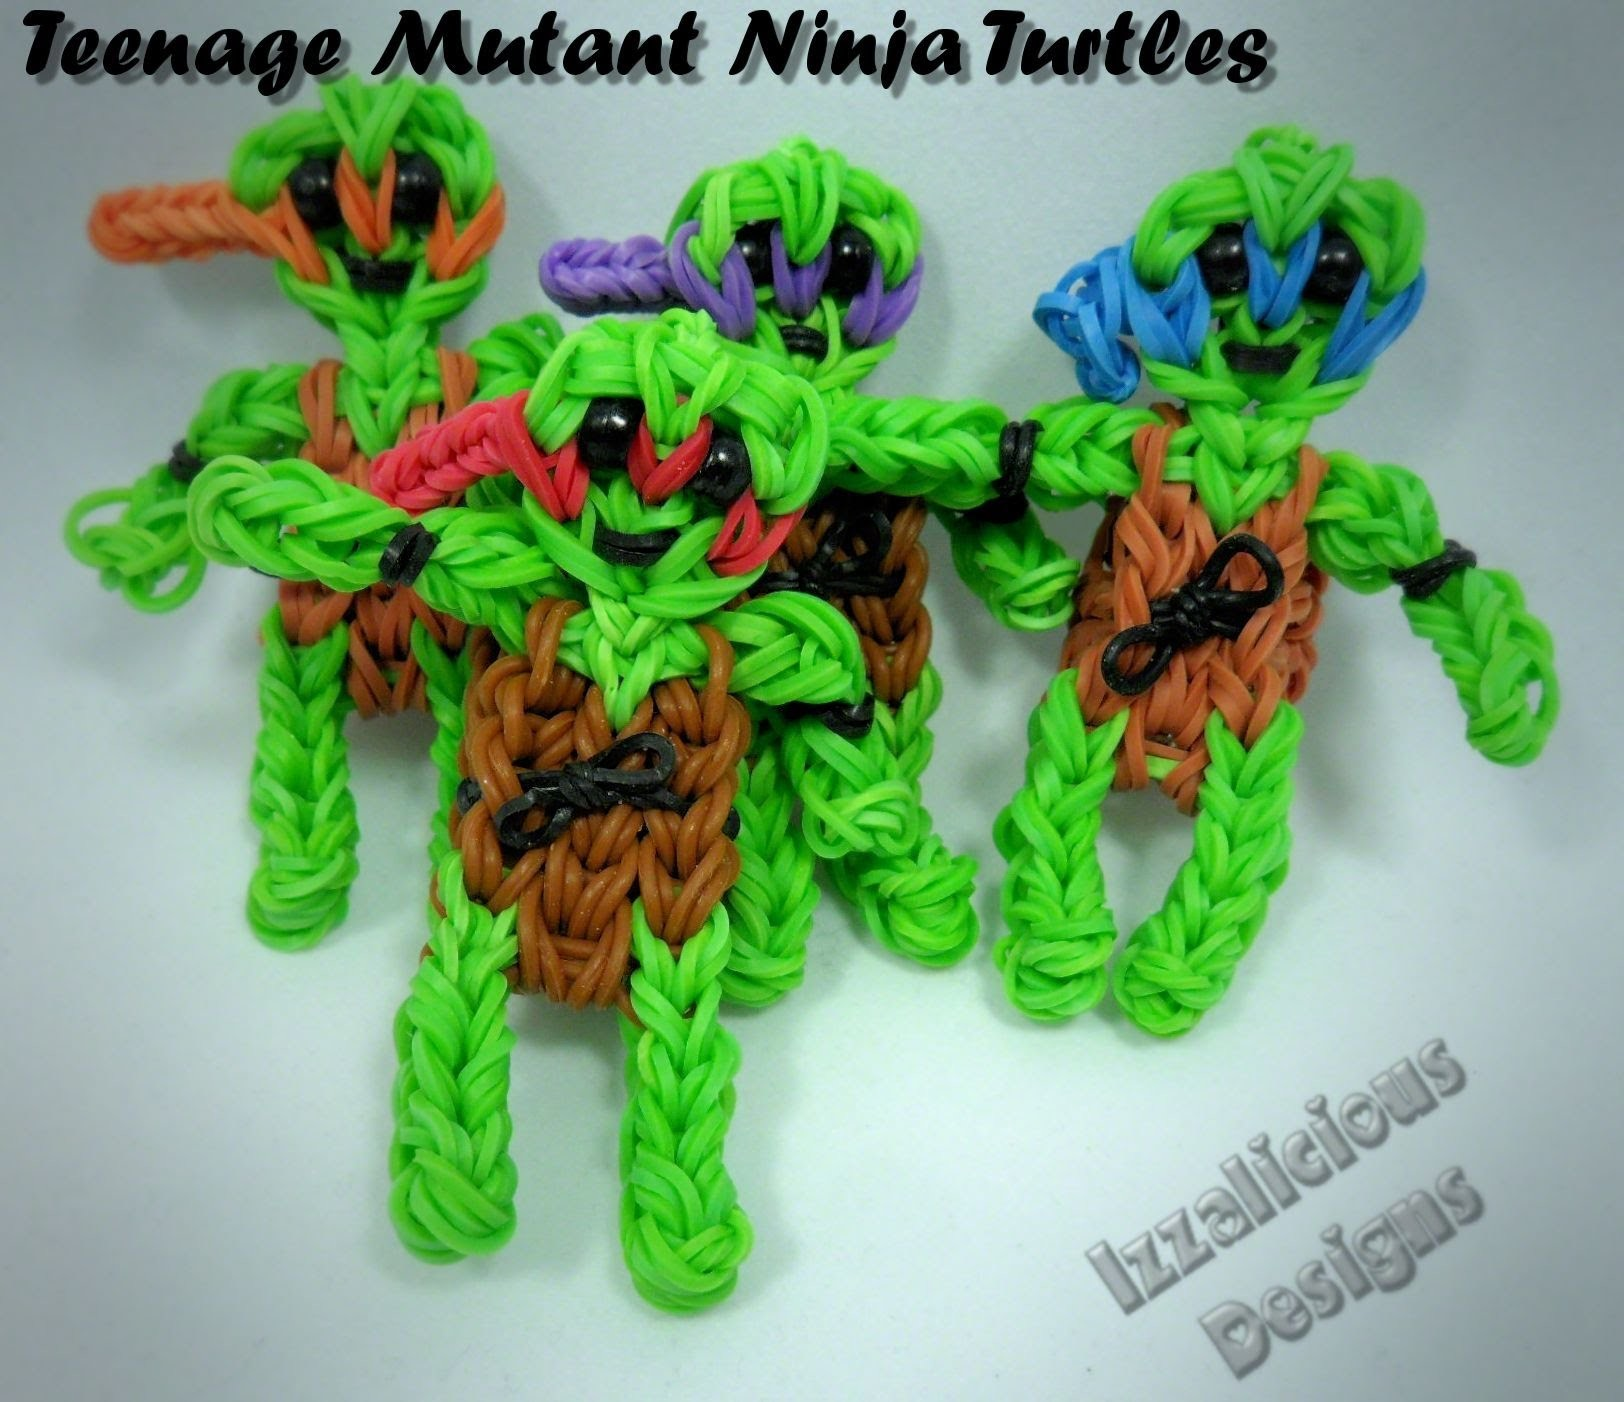 Rainbow Loom Teenage Mutant Ninja Turtles Action Figure.Charm Tutorial